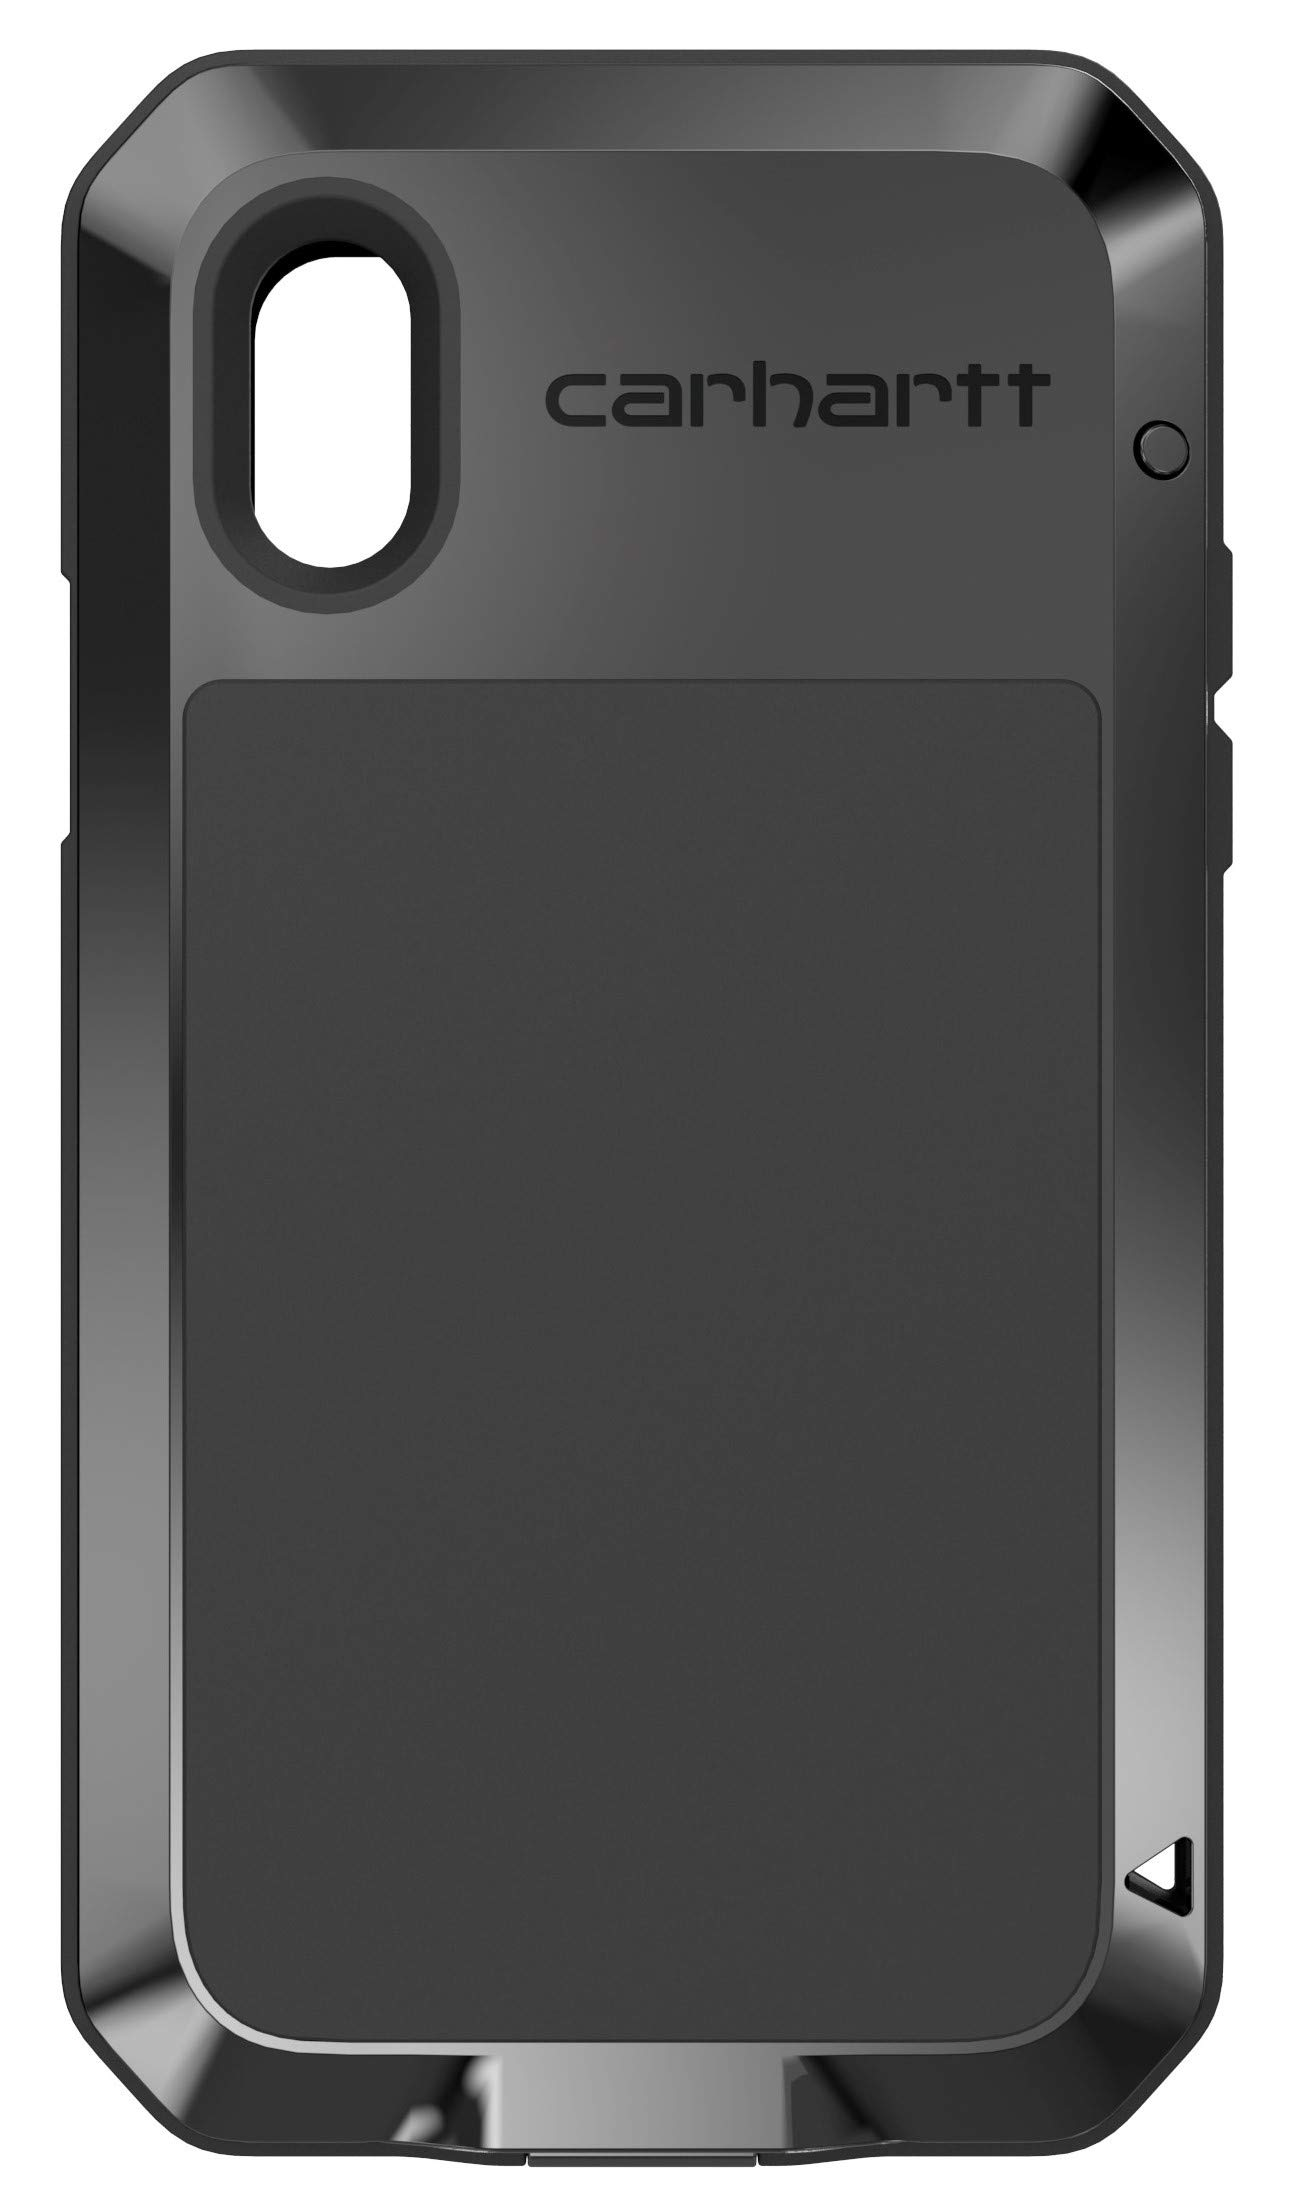 Carhartt RIG Case for iPhone Xs Max by Carhartt (Image #6)